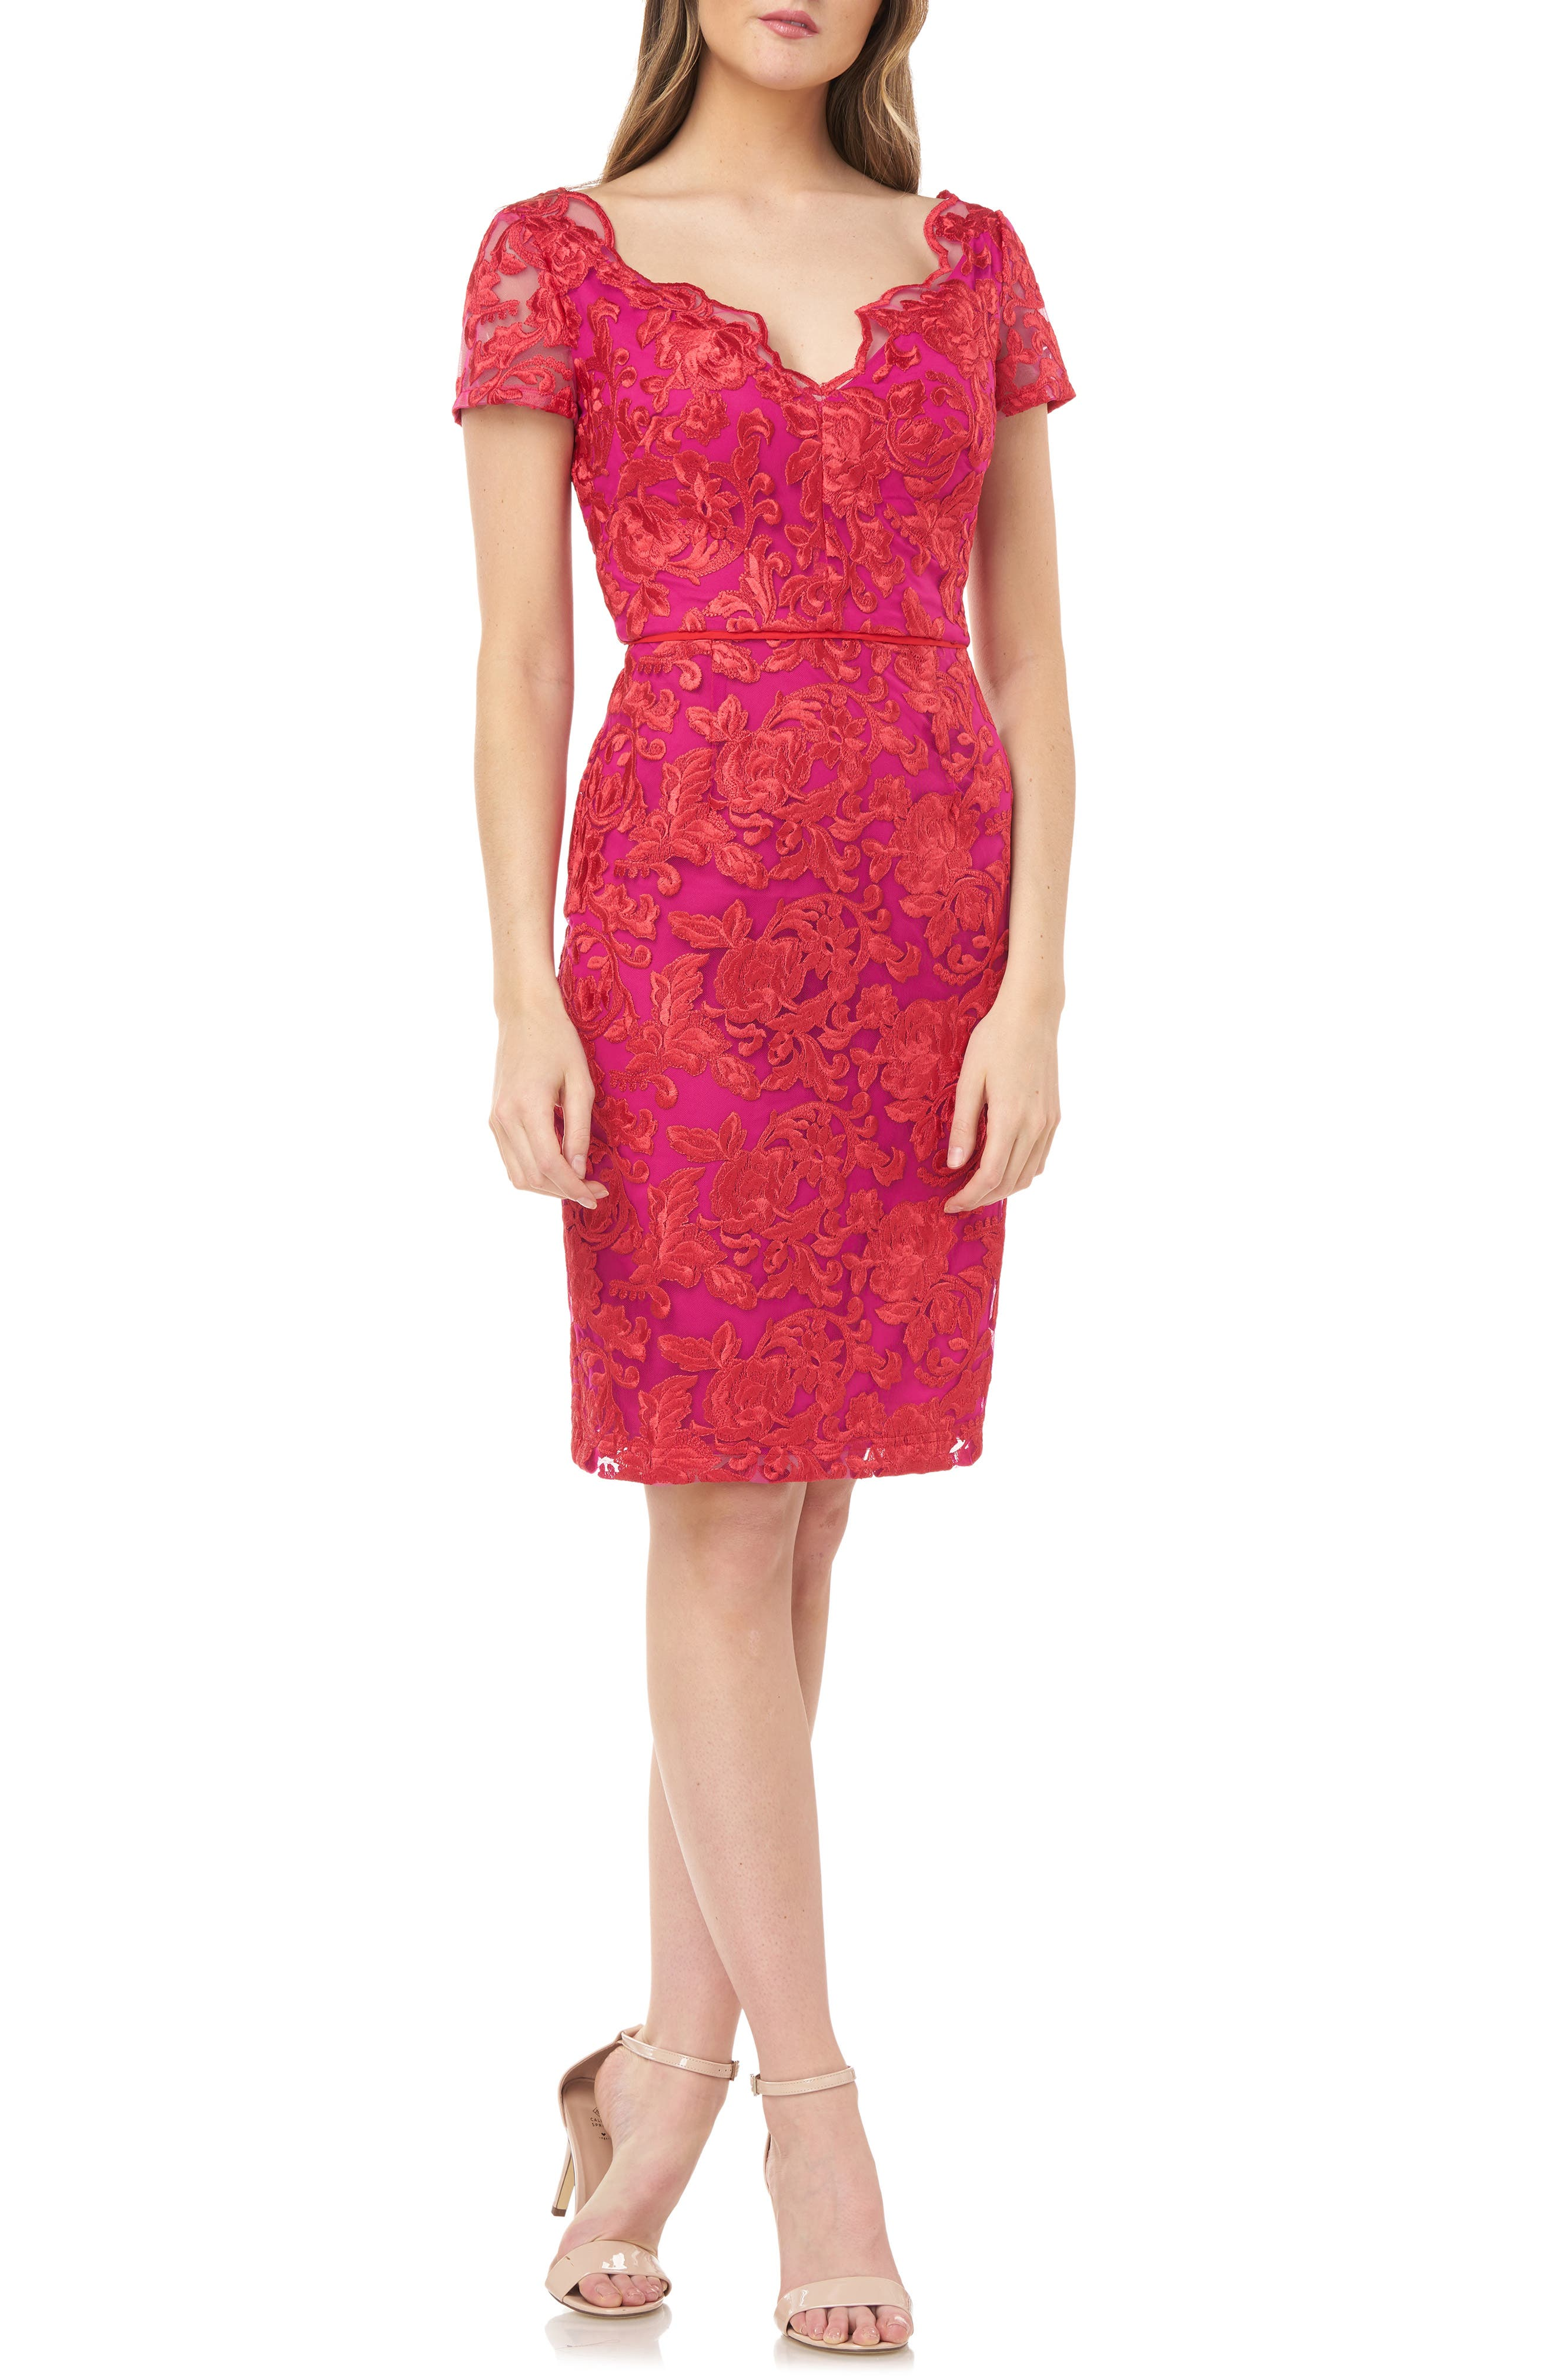 Fiery colors and scalloped edges scintillate on this embroidered sheath that\\\'s sure to ignite interest. Style Name: Js Collections Embroidered Scalloped V-Neck Mesh Dress. Style Number: 6060463. Available in stores.